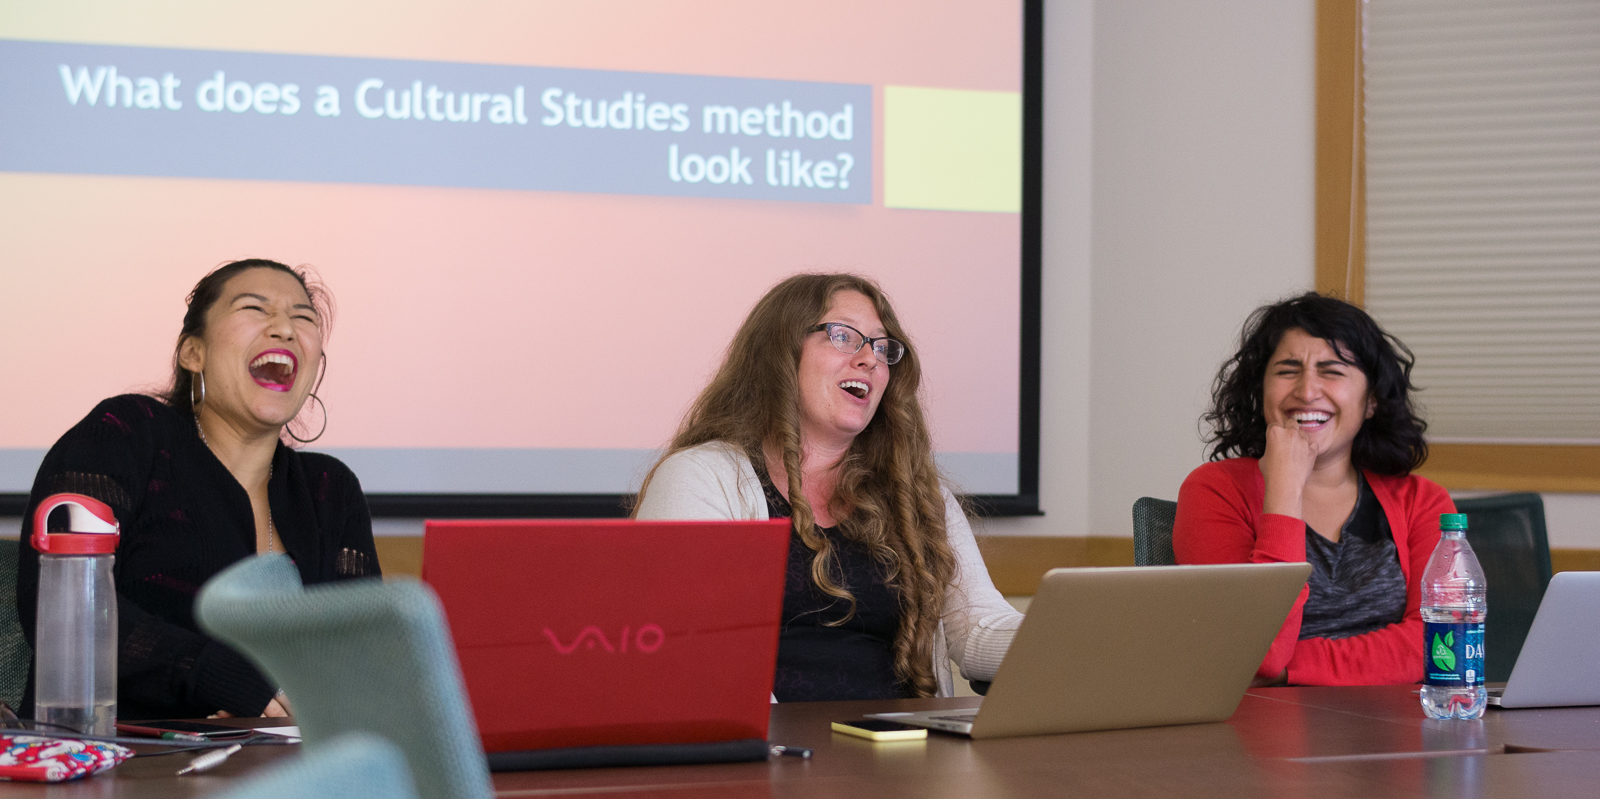 PhD candidates Trisha Barua, Stephanie Maroney, Elisa Oceguera, and CST Alum Jinni Pradhan (Ph.D., 2016) share their expertise in Cultural Studies methods